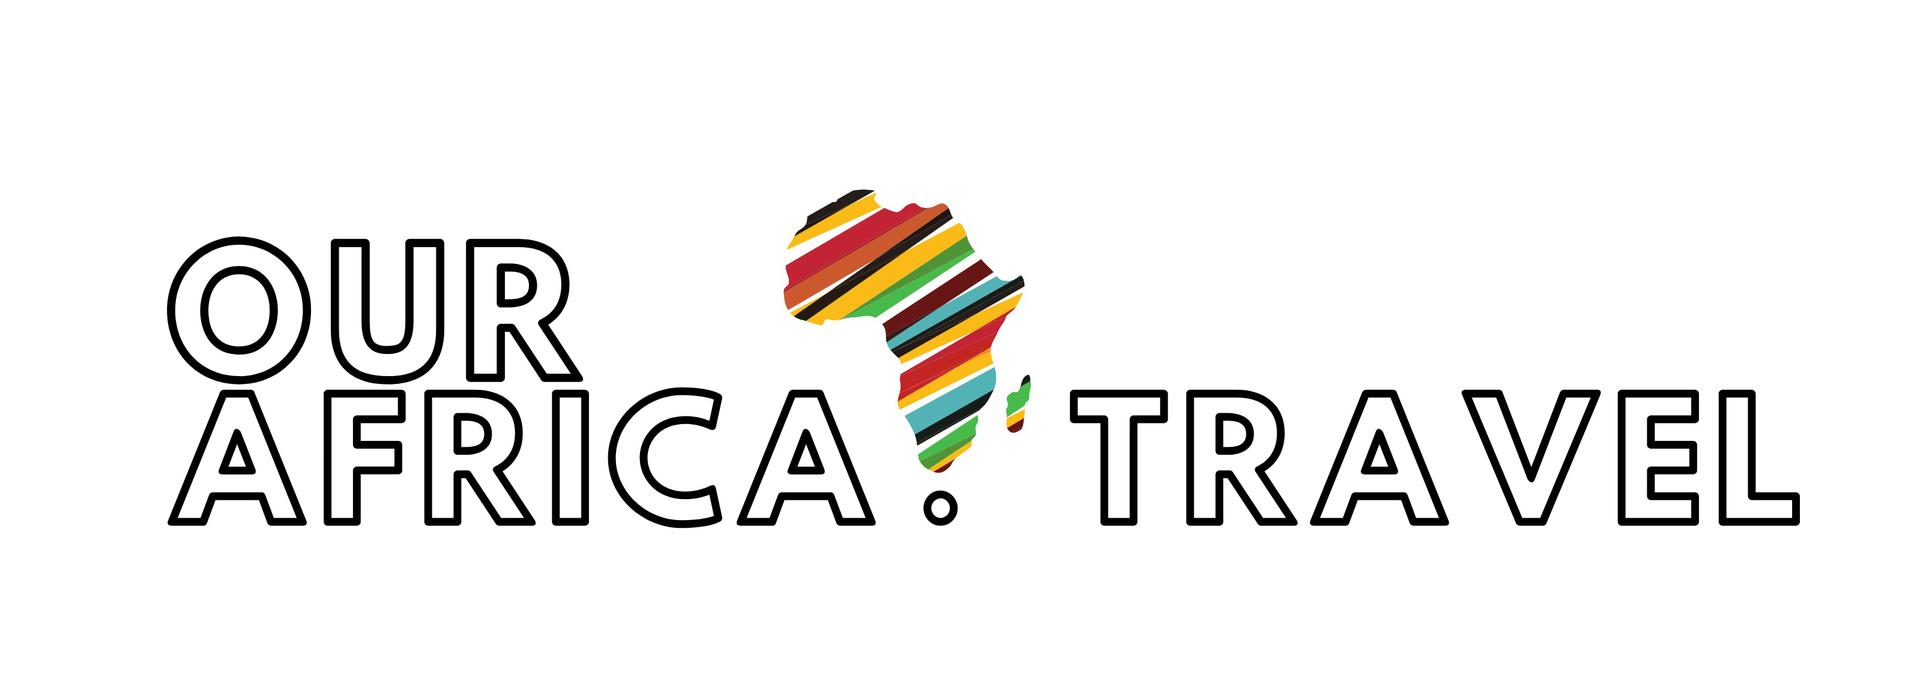 OurAfrica . Travel Trade Show Appointments Now OPEN!